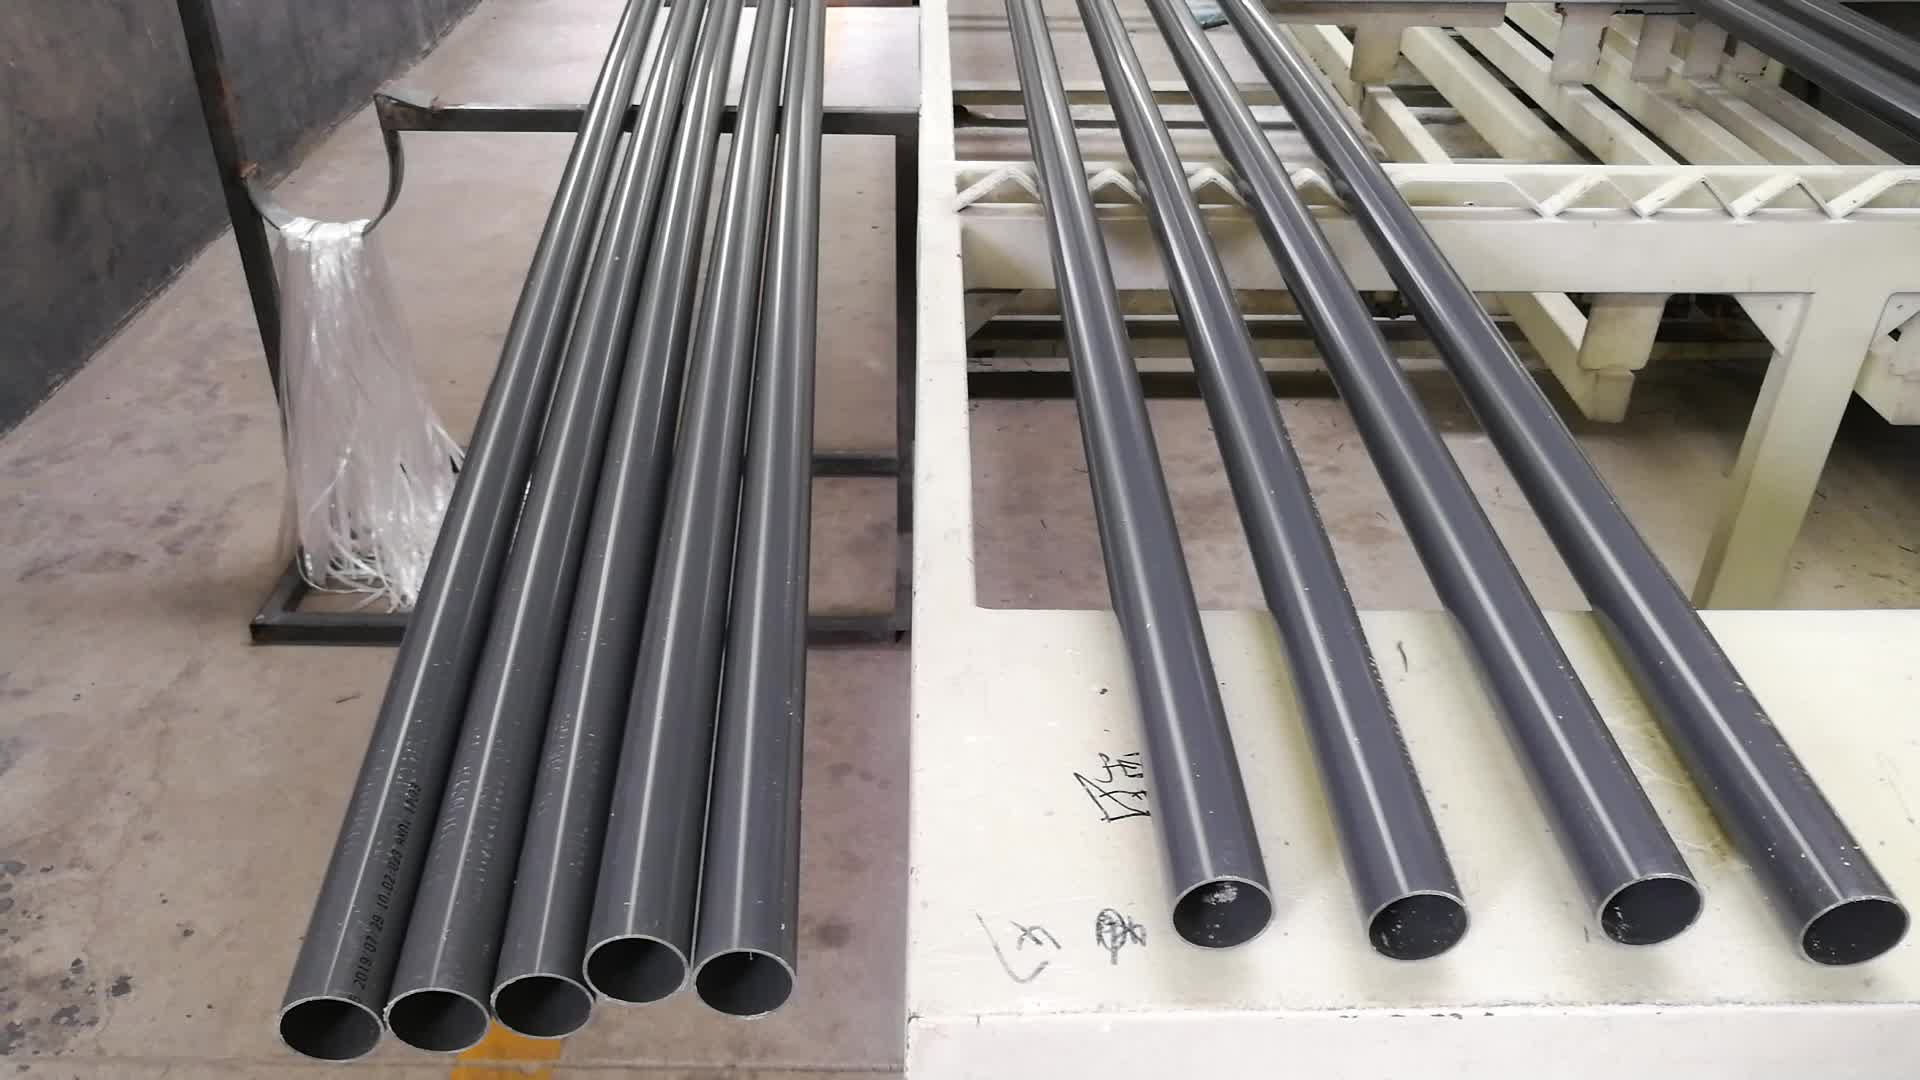 Dn75,DN90 Lowest price pvc water pipe upvc pipe list